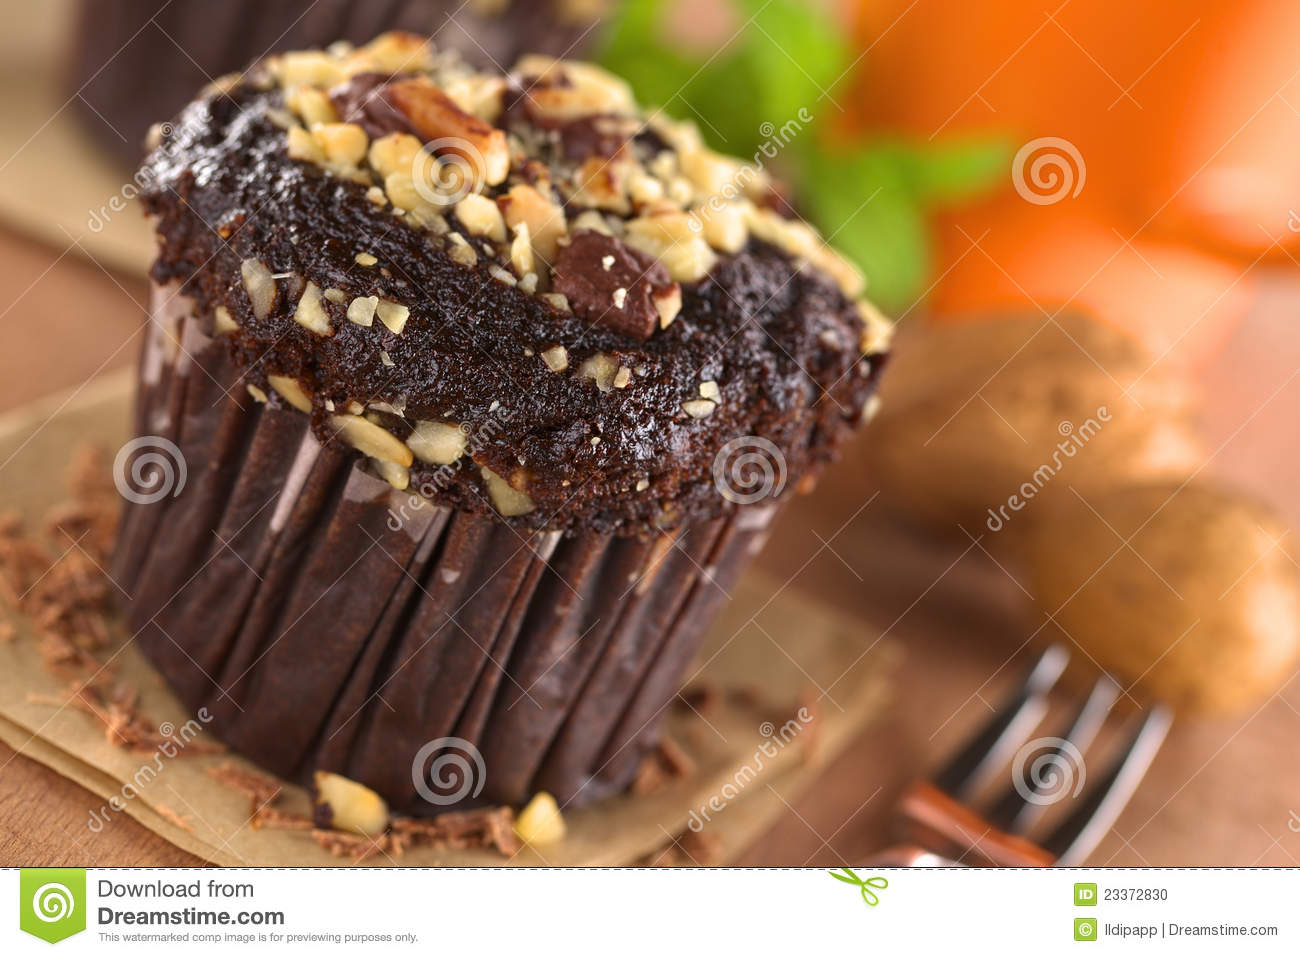 Chocolate-Walnut Muffin